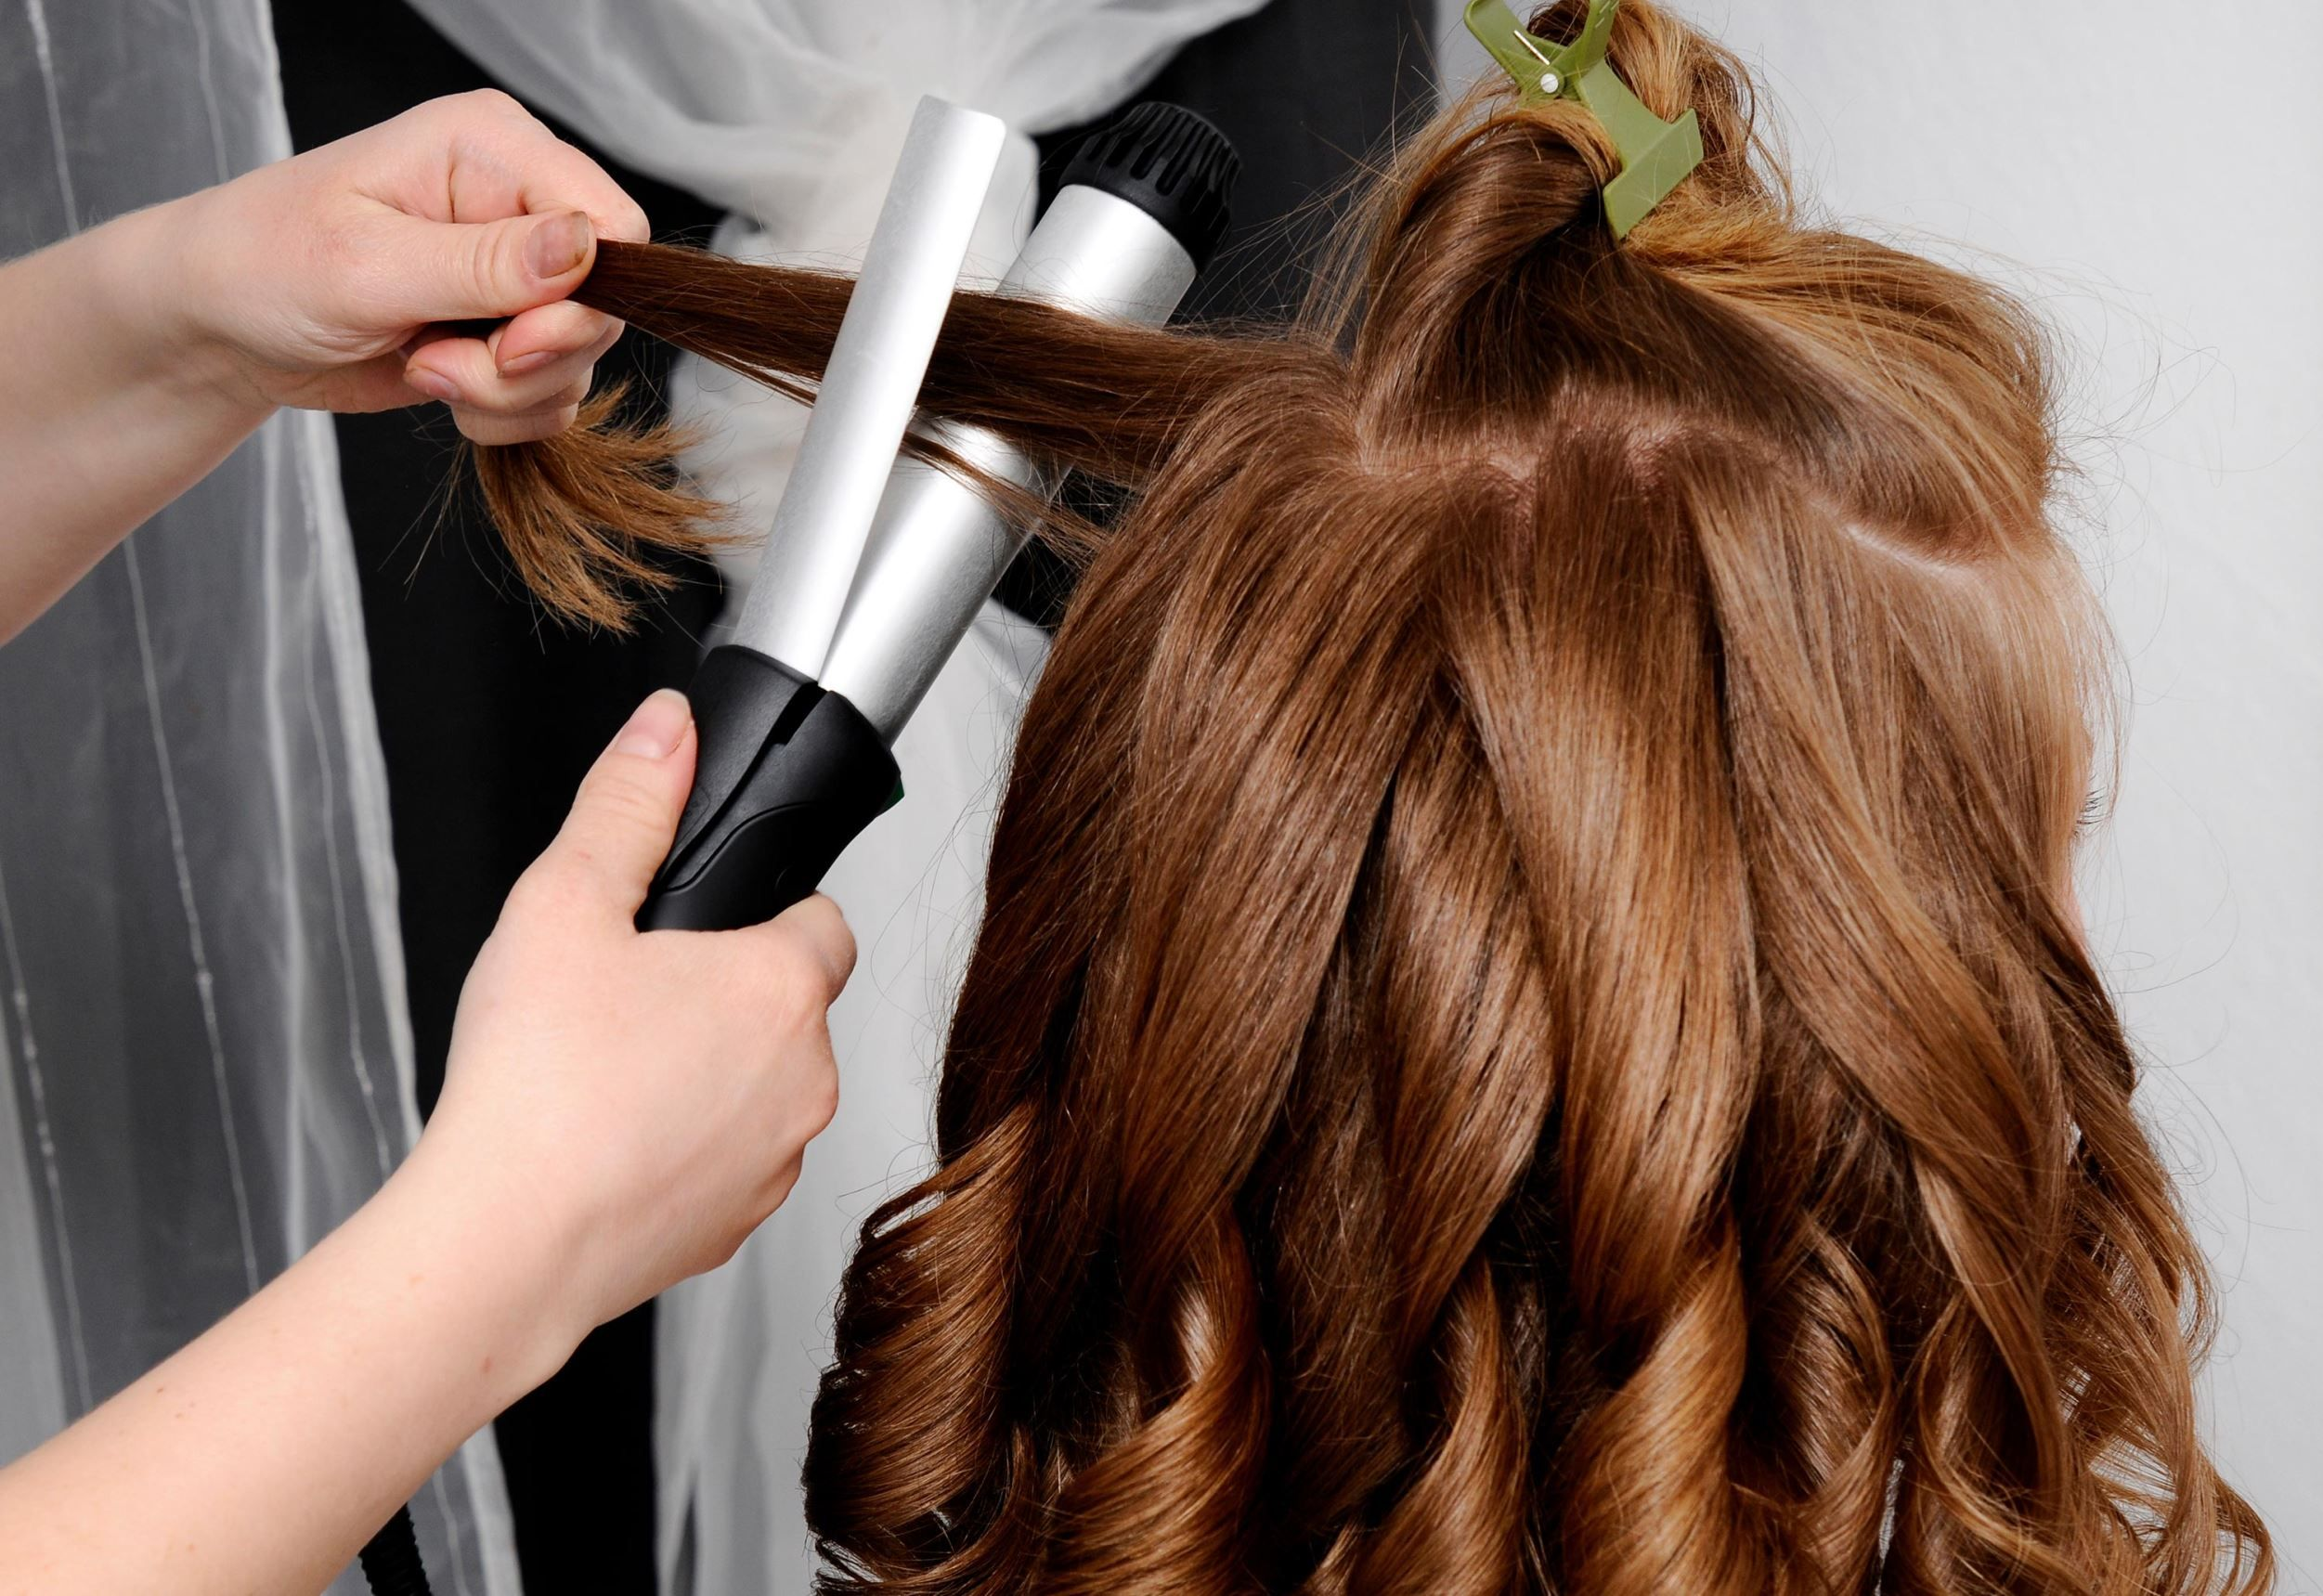 10 incredible curling iron tricks you'd never think to try